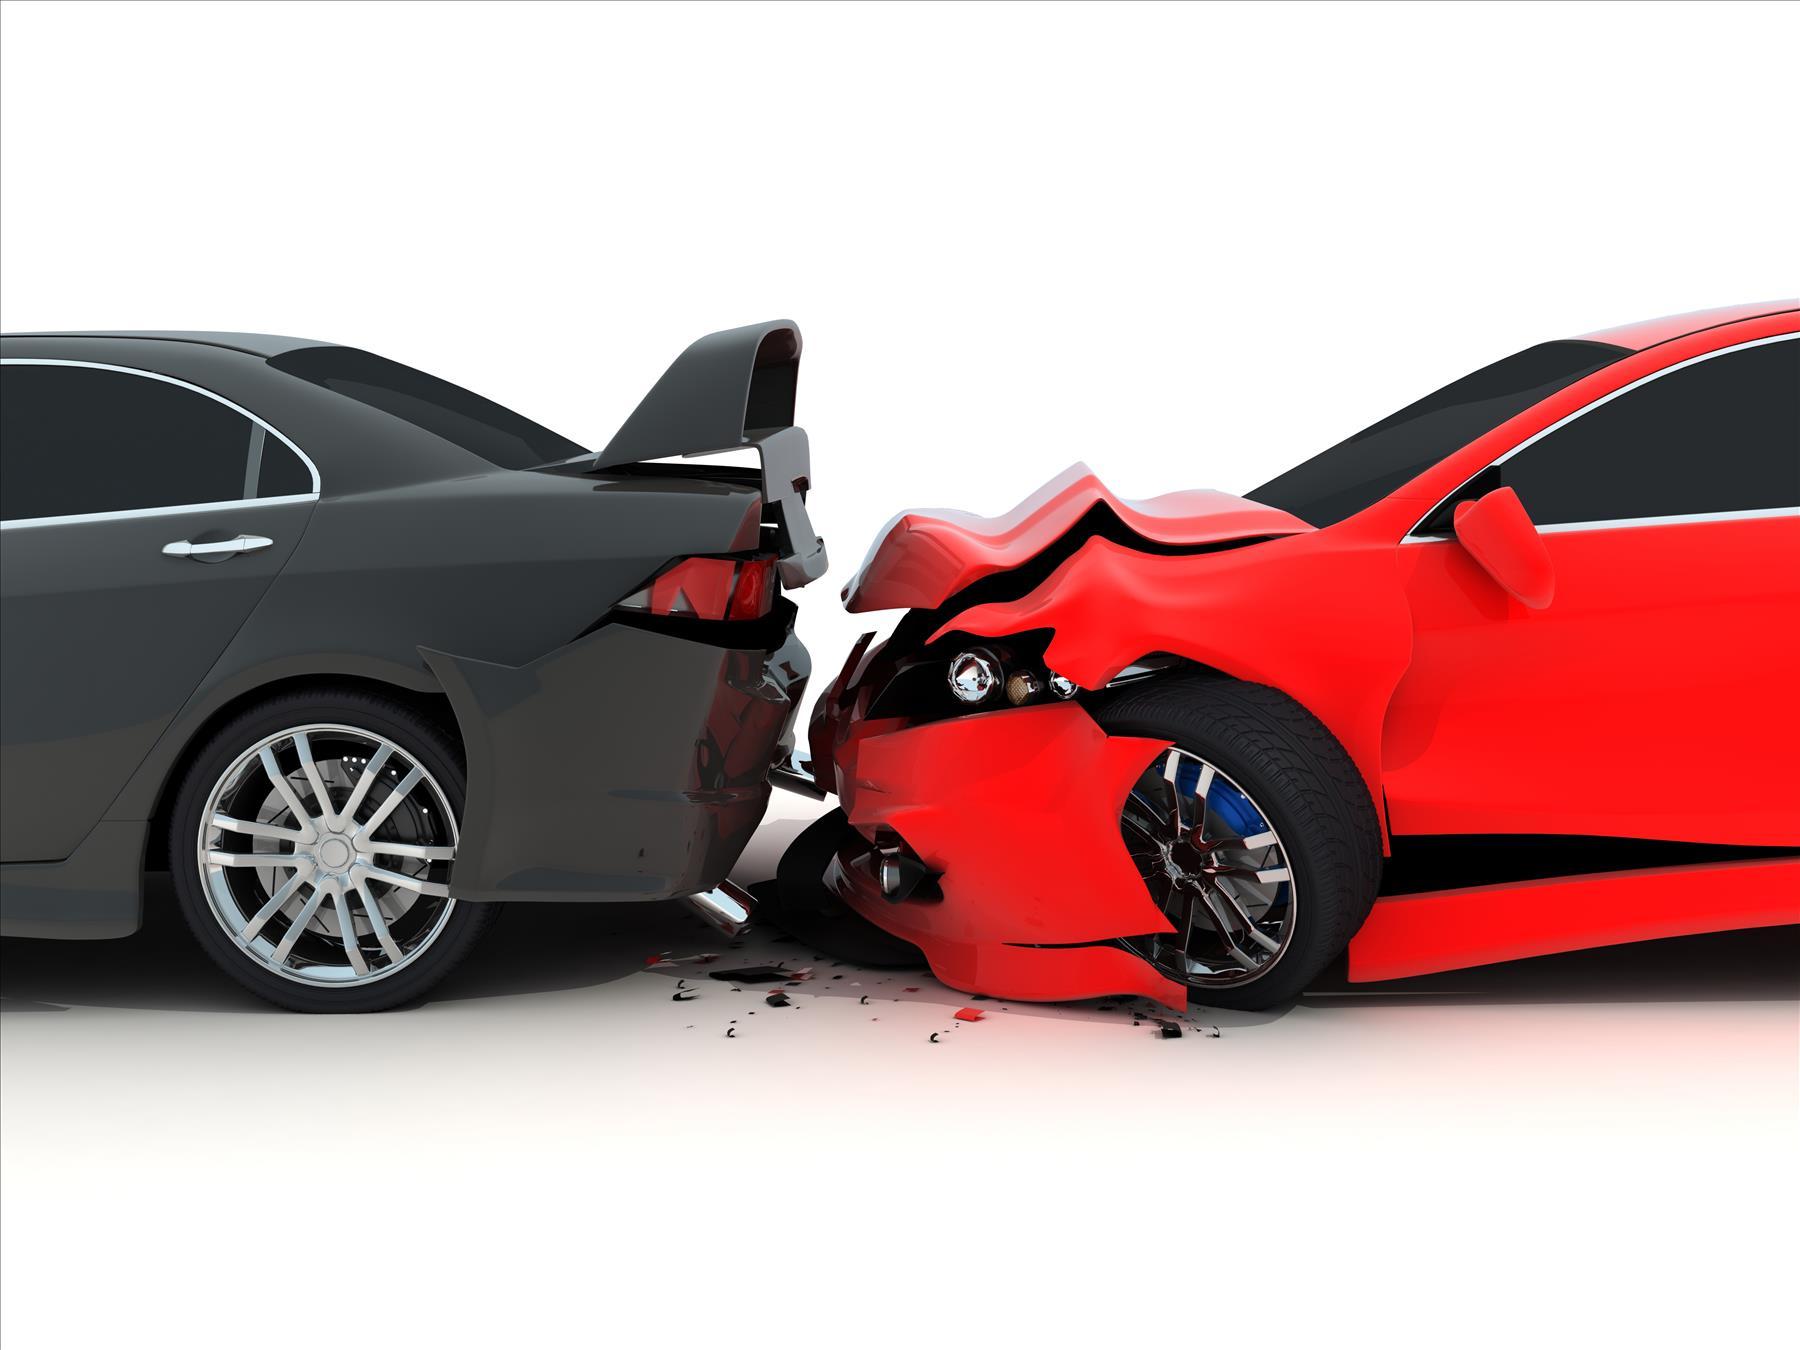 A Serious Accident Lawyer Will Help You in the Aftermath of a Distracted Driving Accident